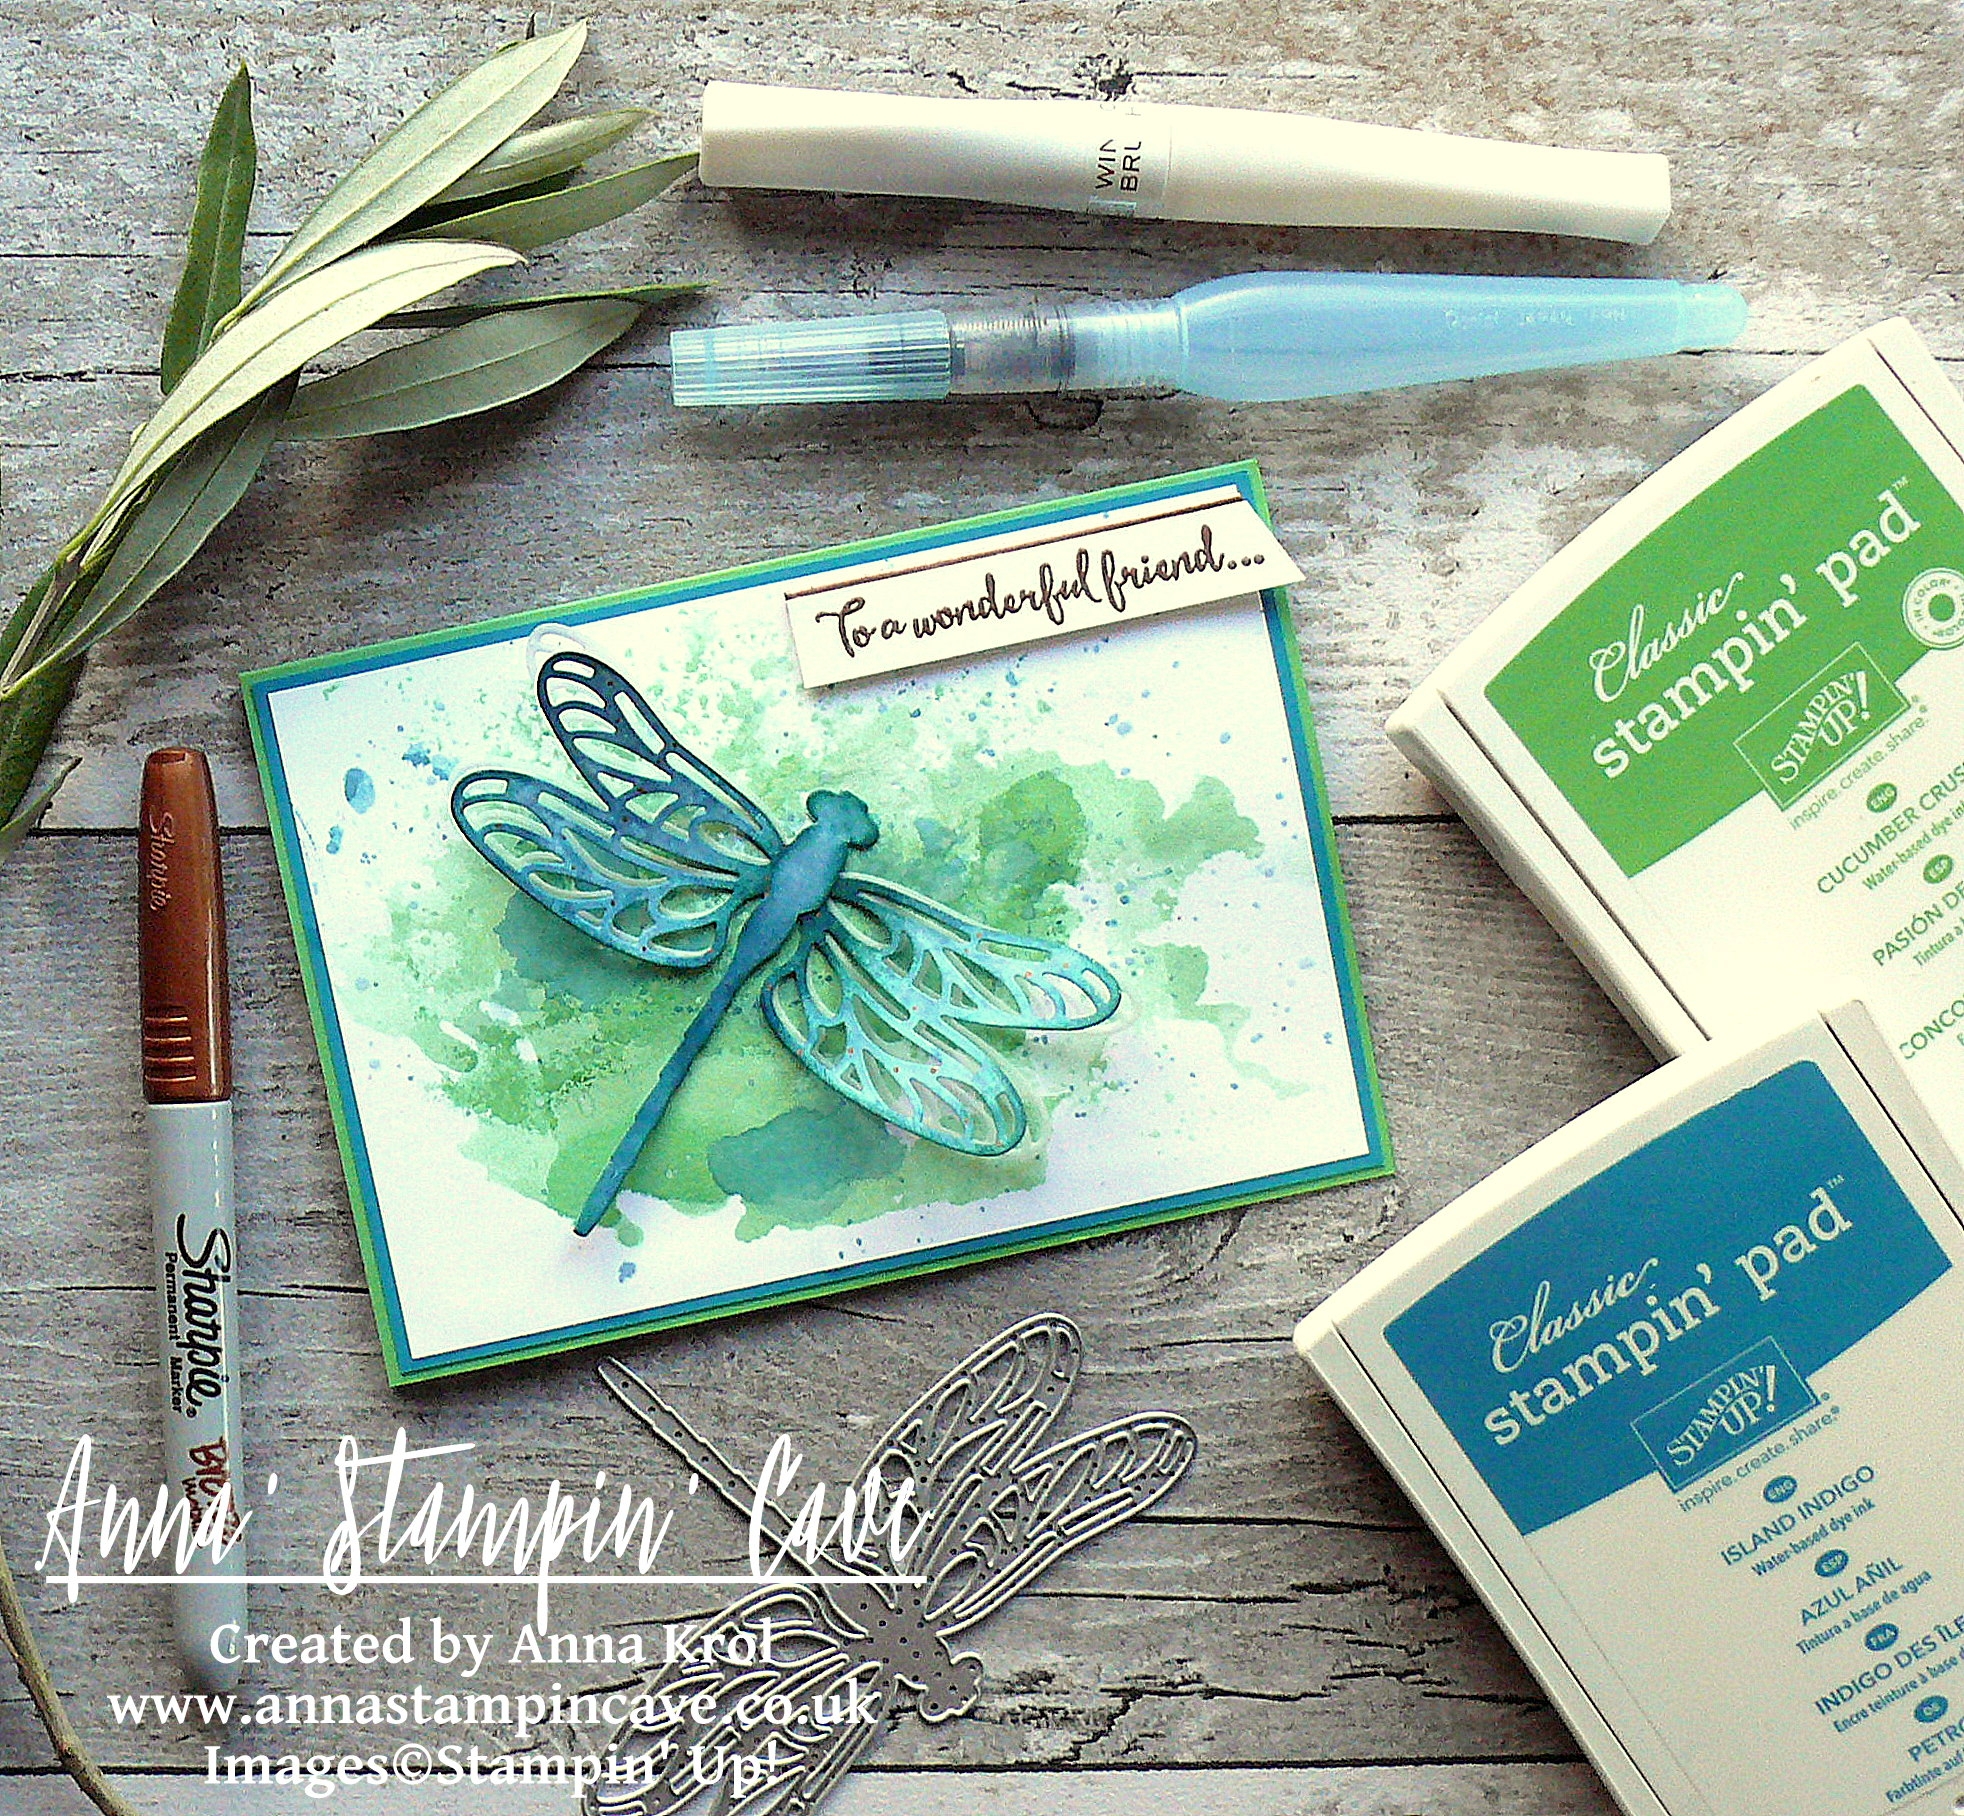 anna-stampin-cave-ink-smooshing-technique-with-dragonfly-dreams-stamp-set-detailed-dragonfly-thinlits-dies